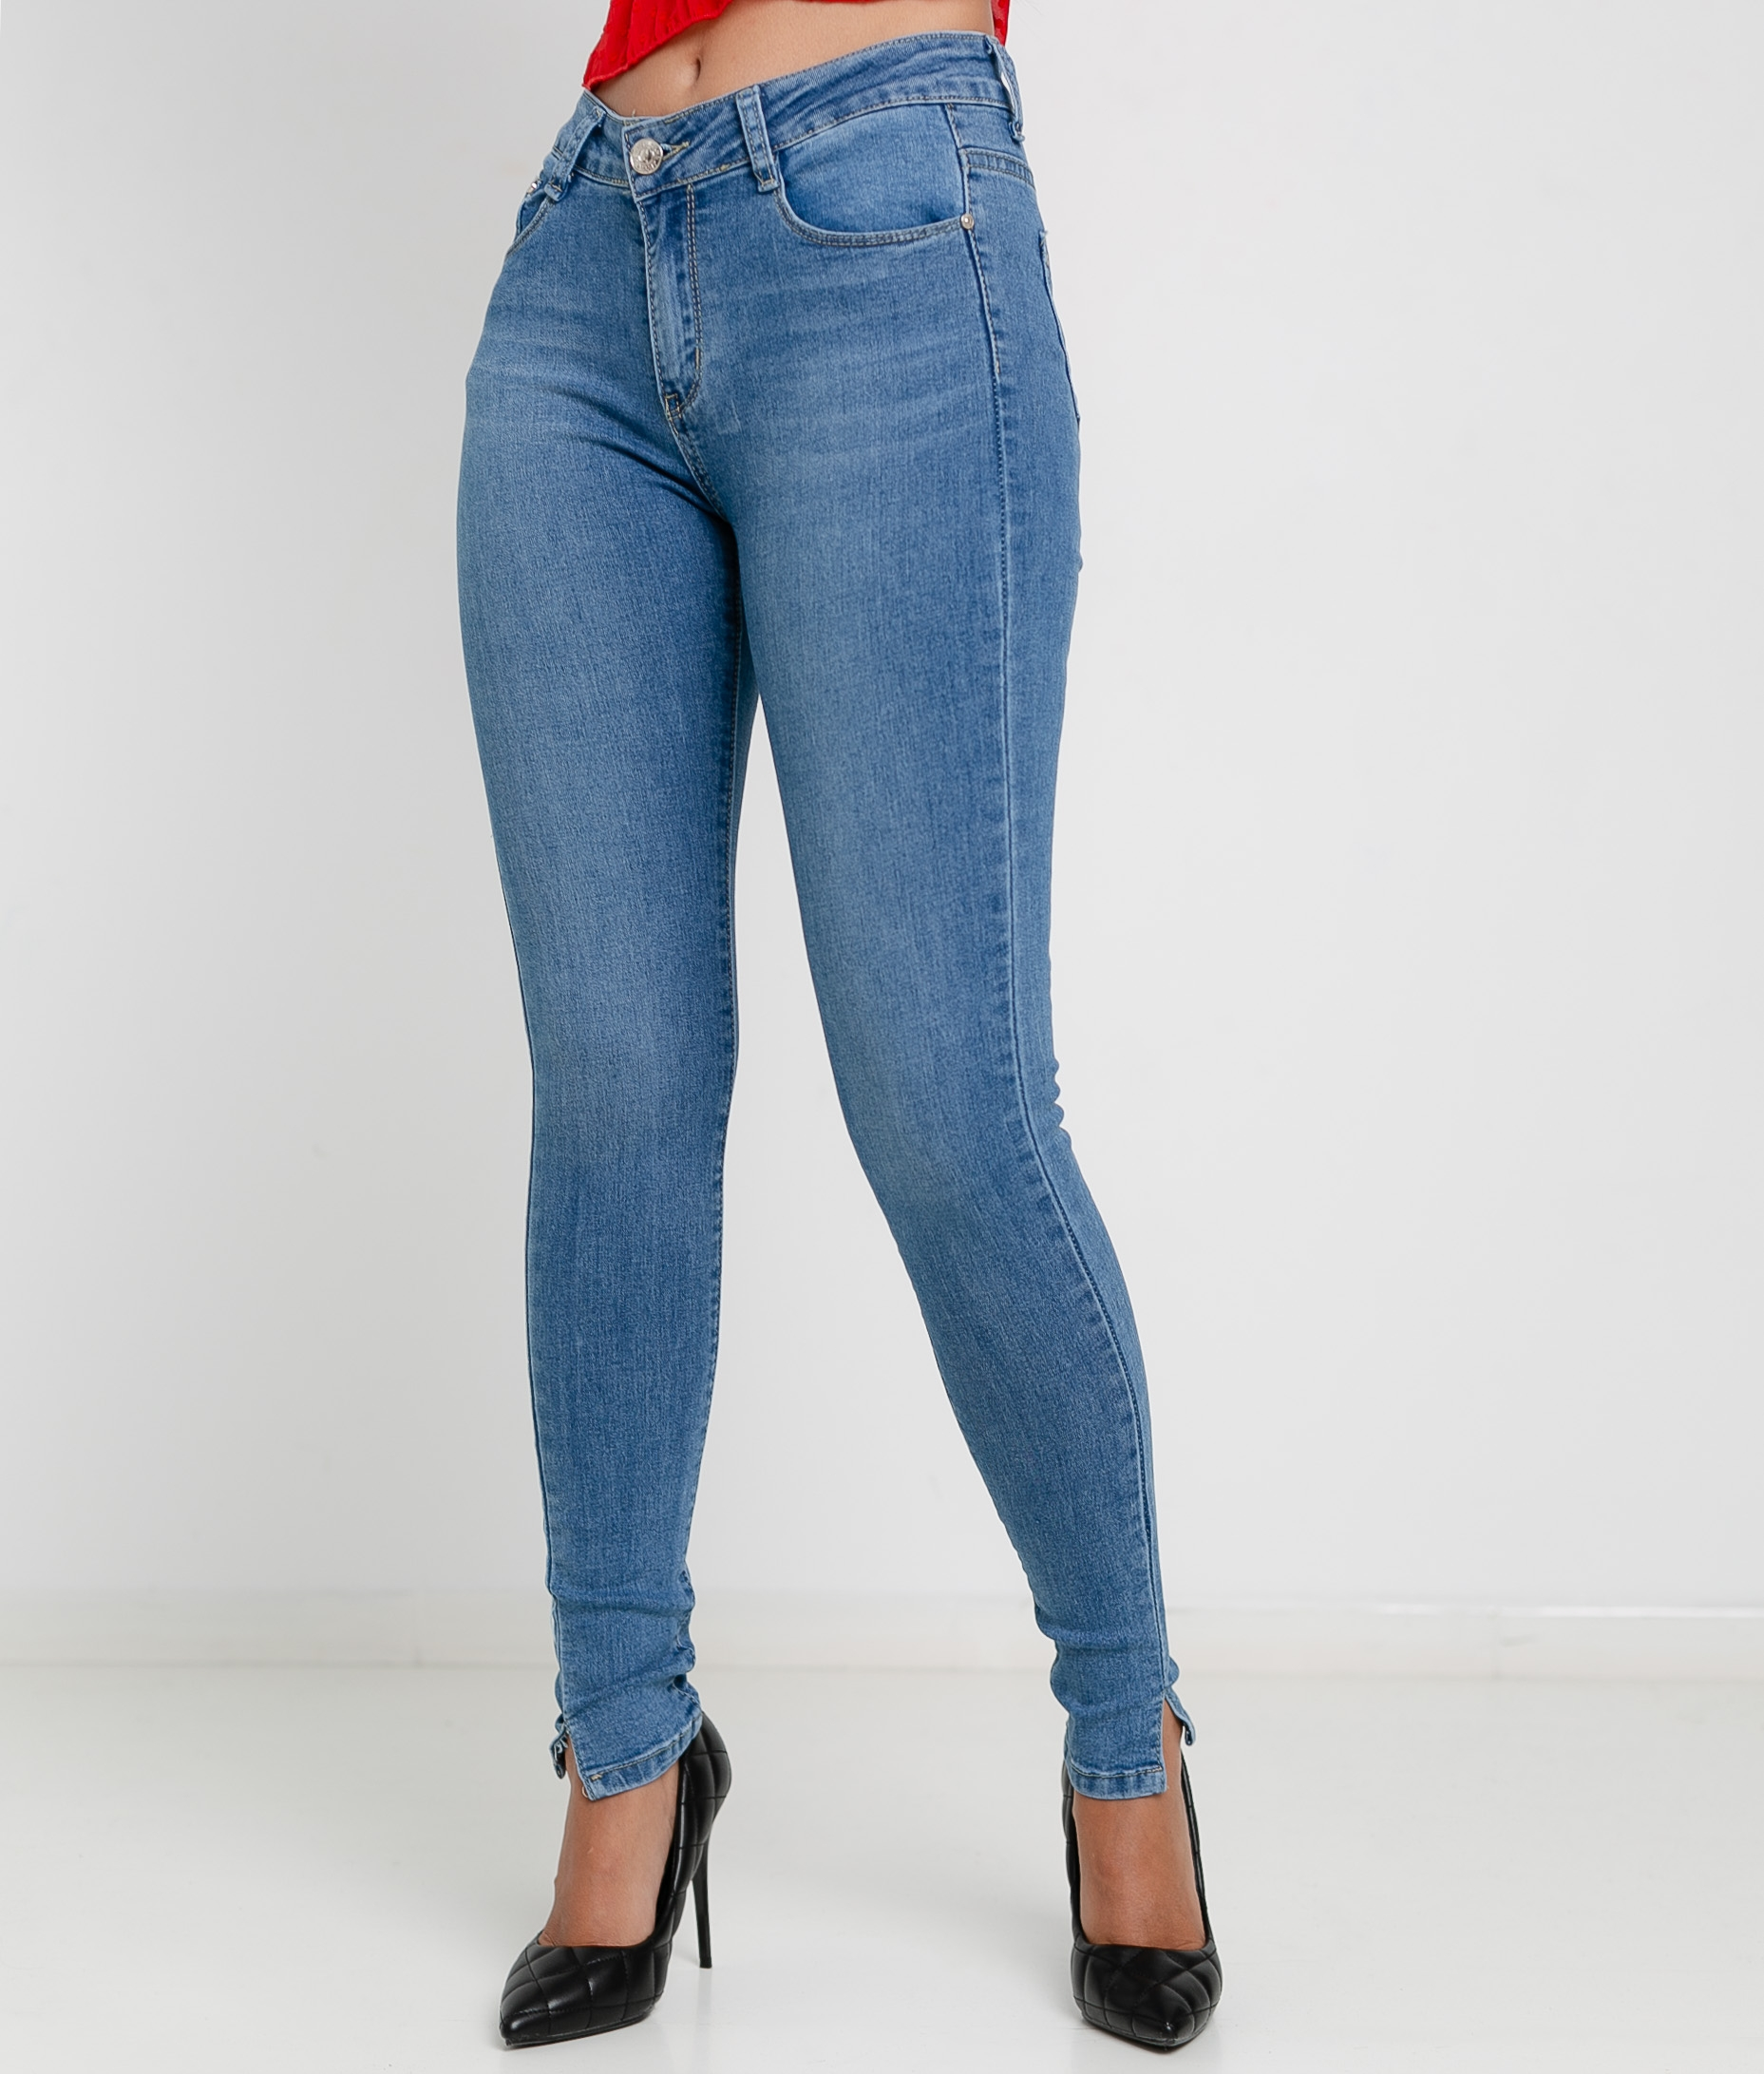 CALÇA FALCONE - DENIM